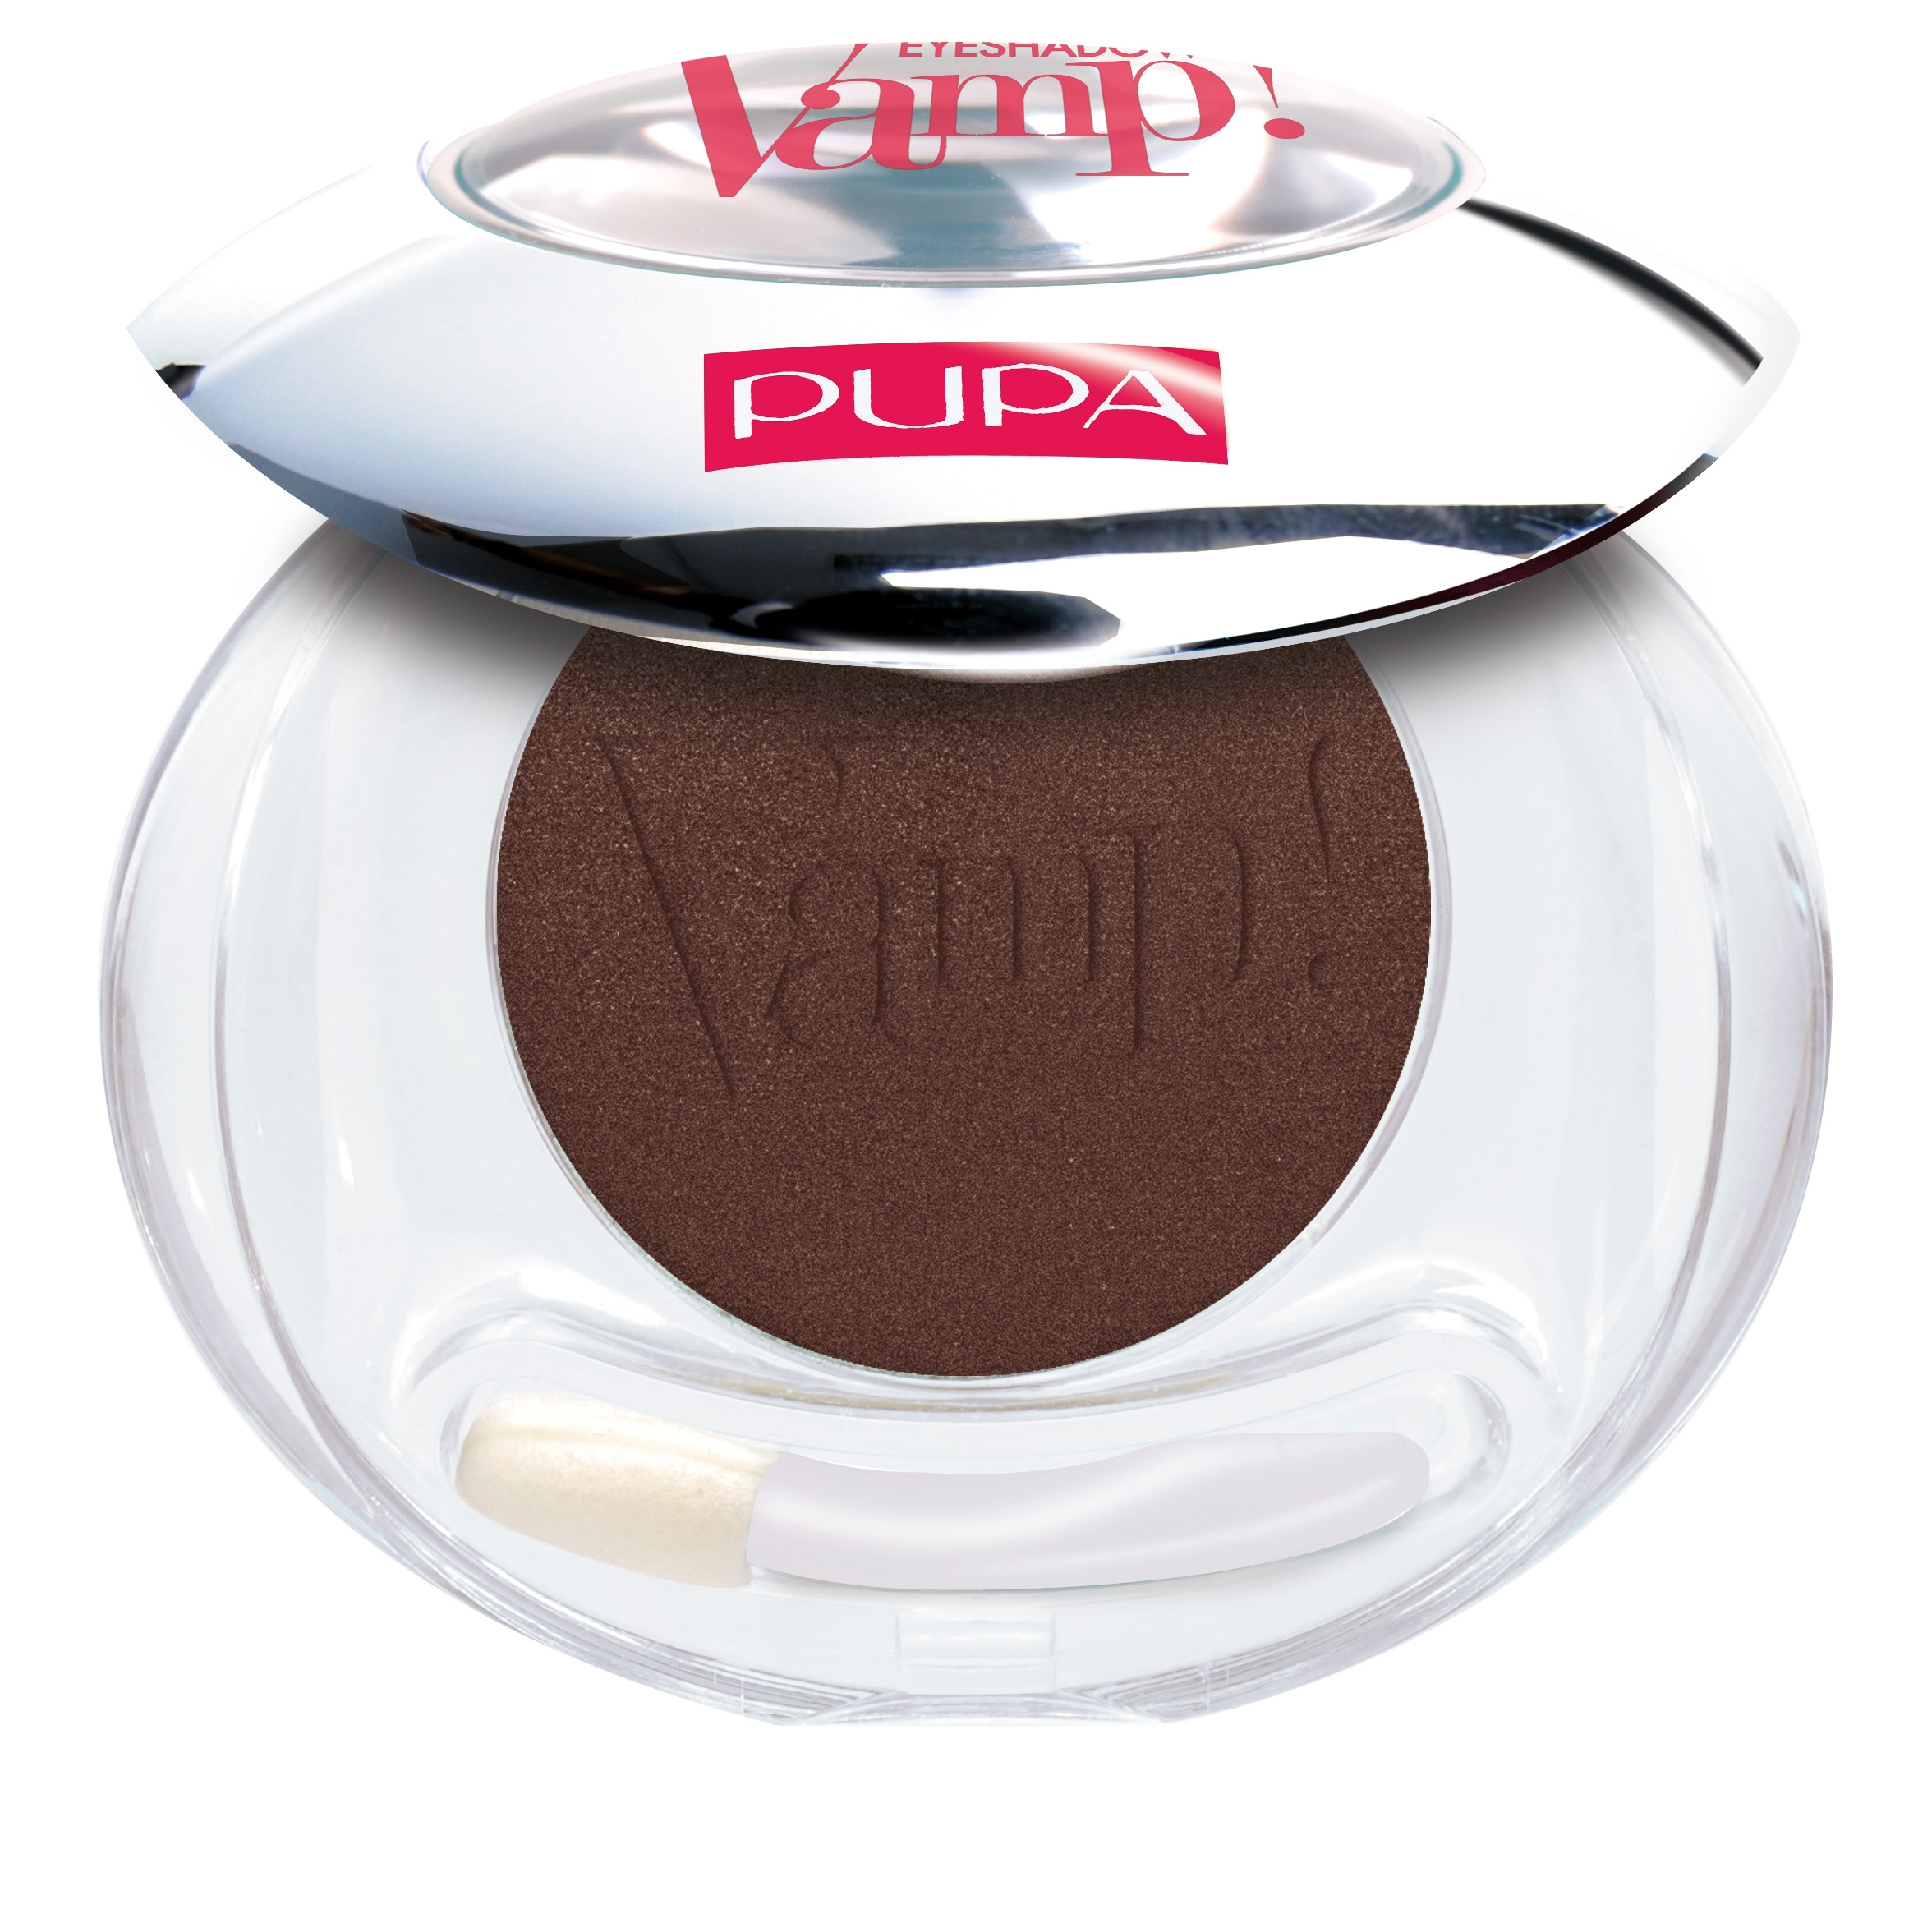 Pupa Vamp Compact Eyeshadow ombretto compatto colore puro n 105 Chocolate Matt